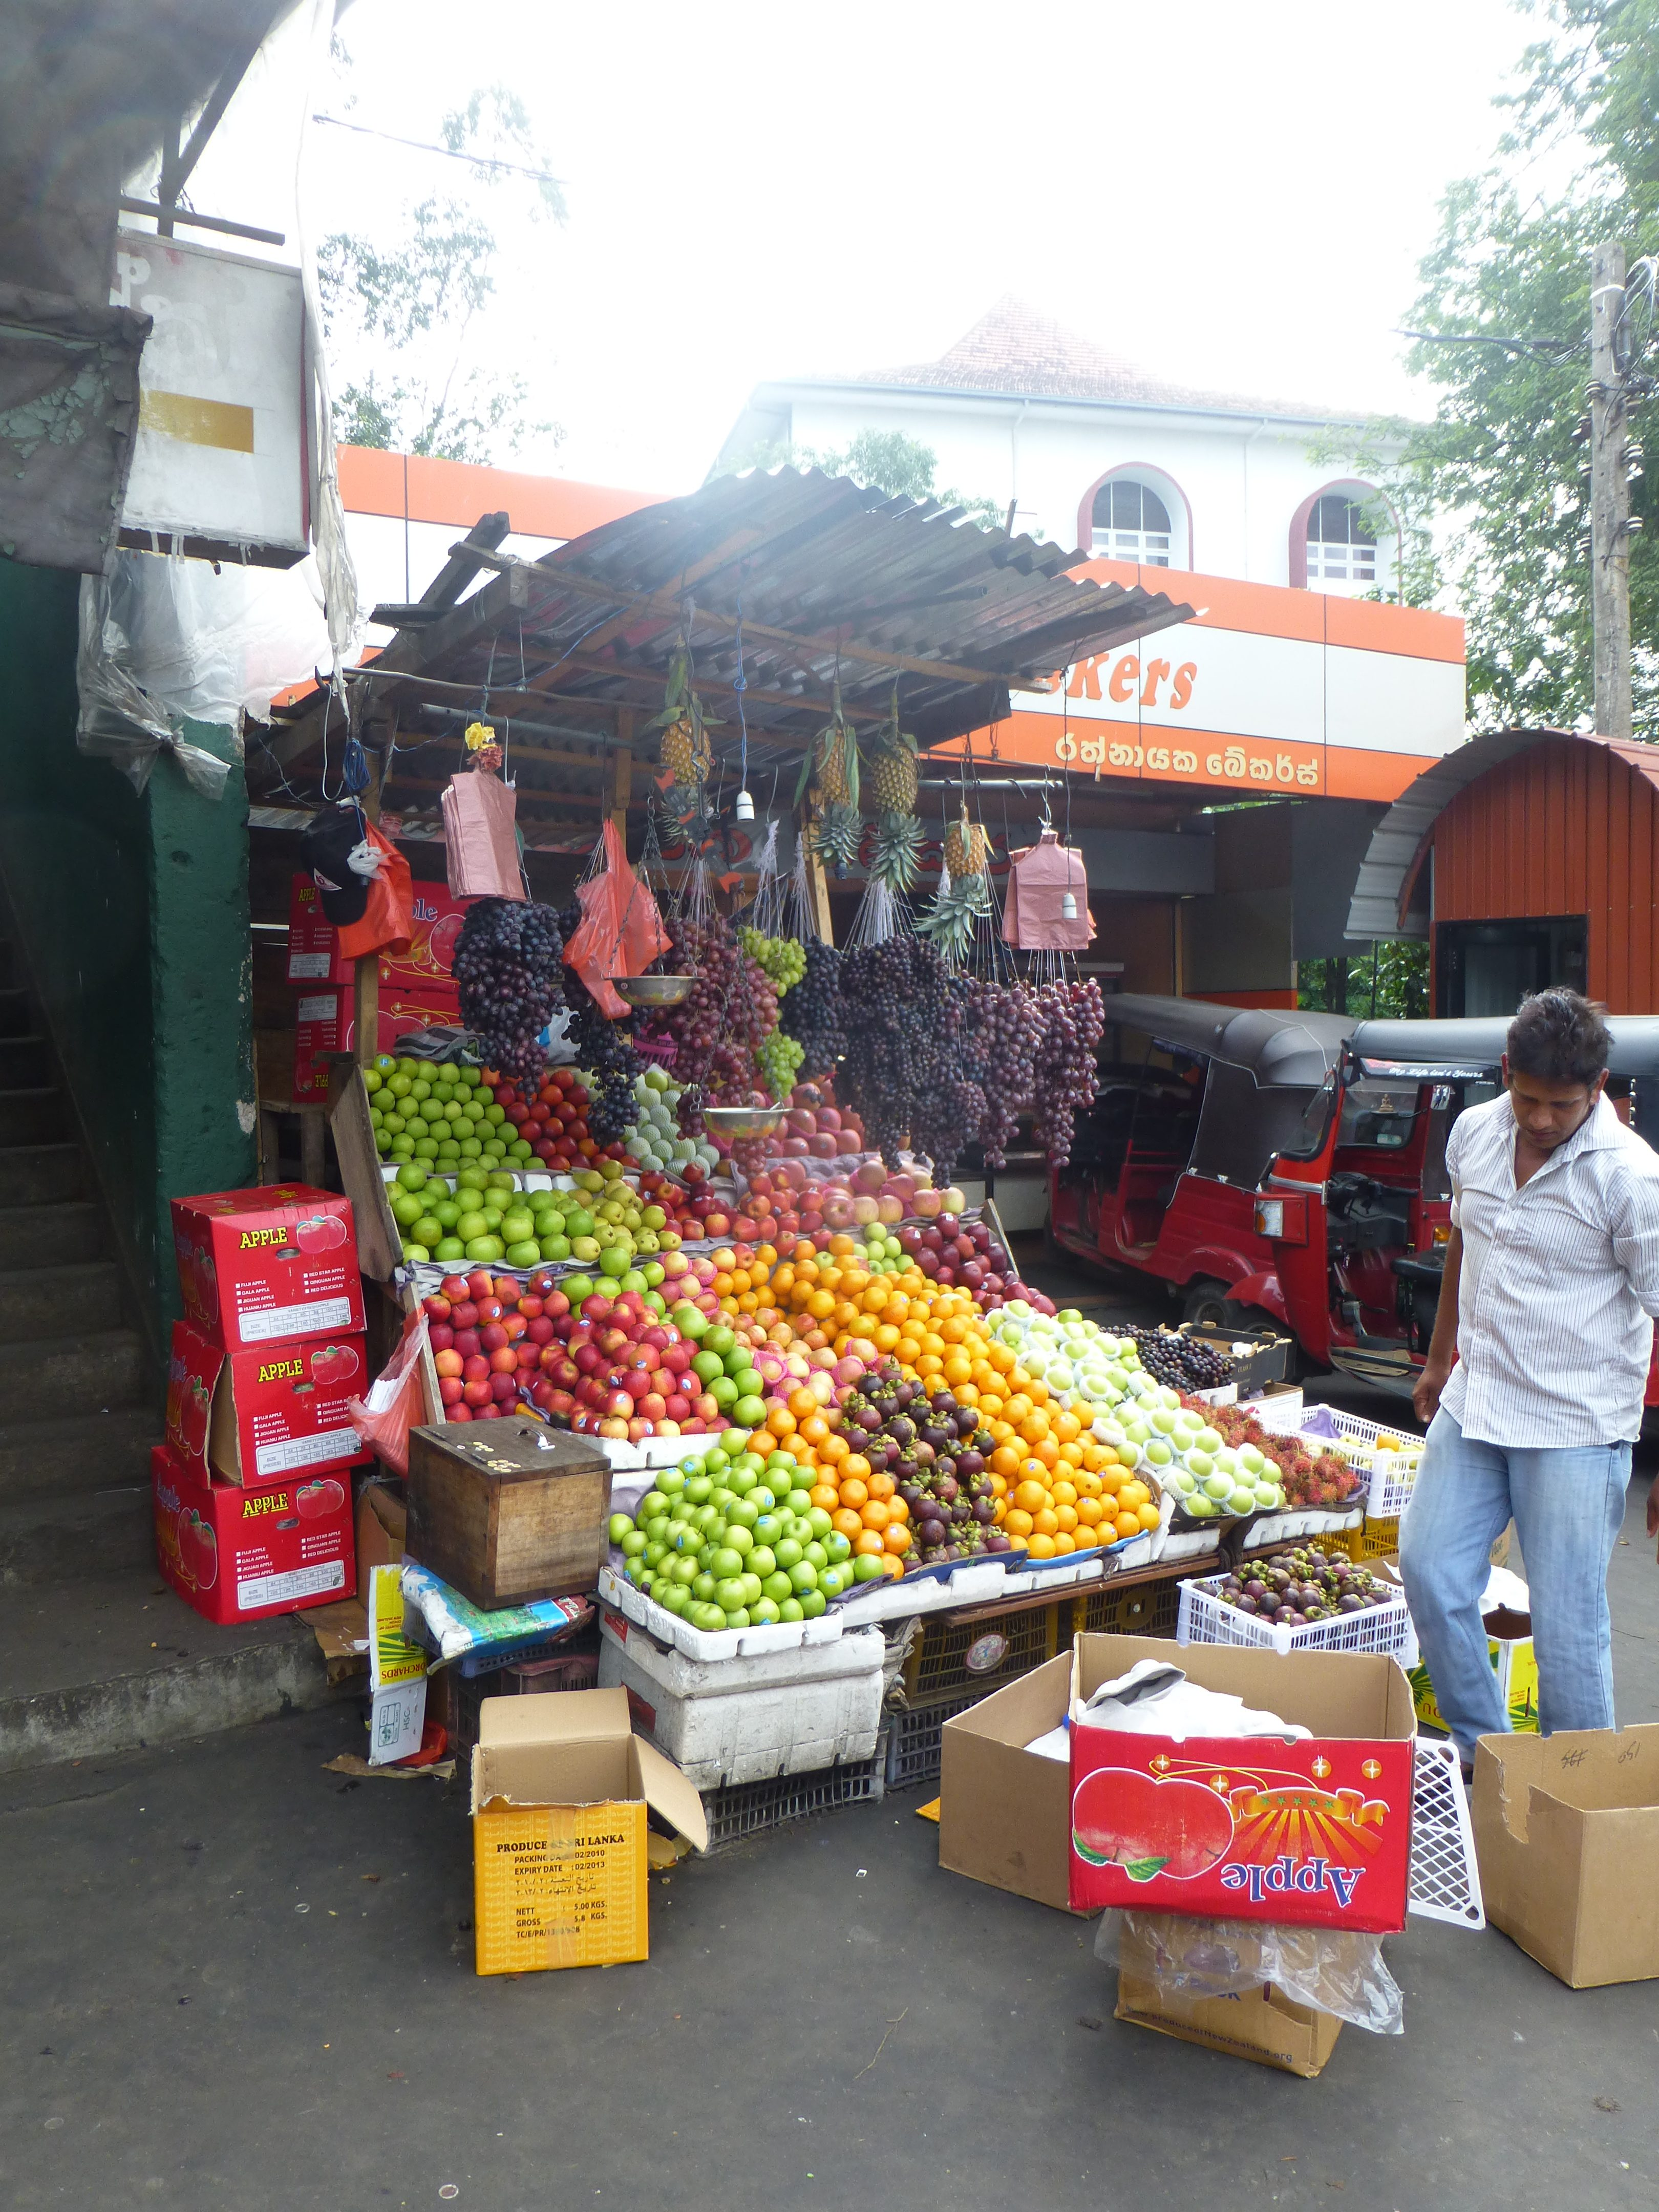 Fruit market stall in Kandy Sri Lanka